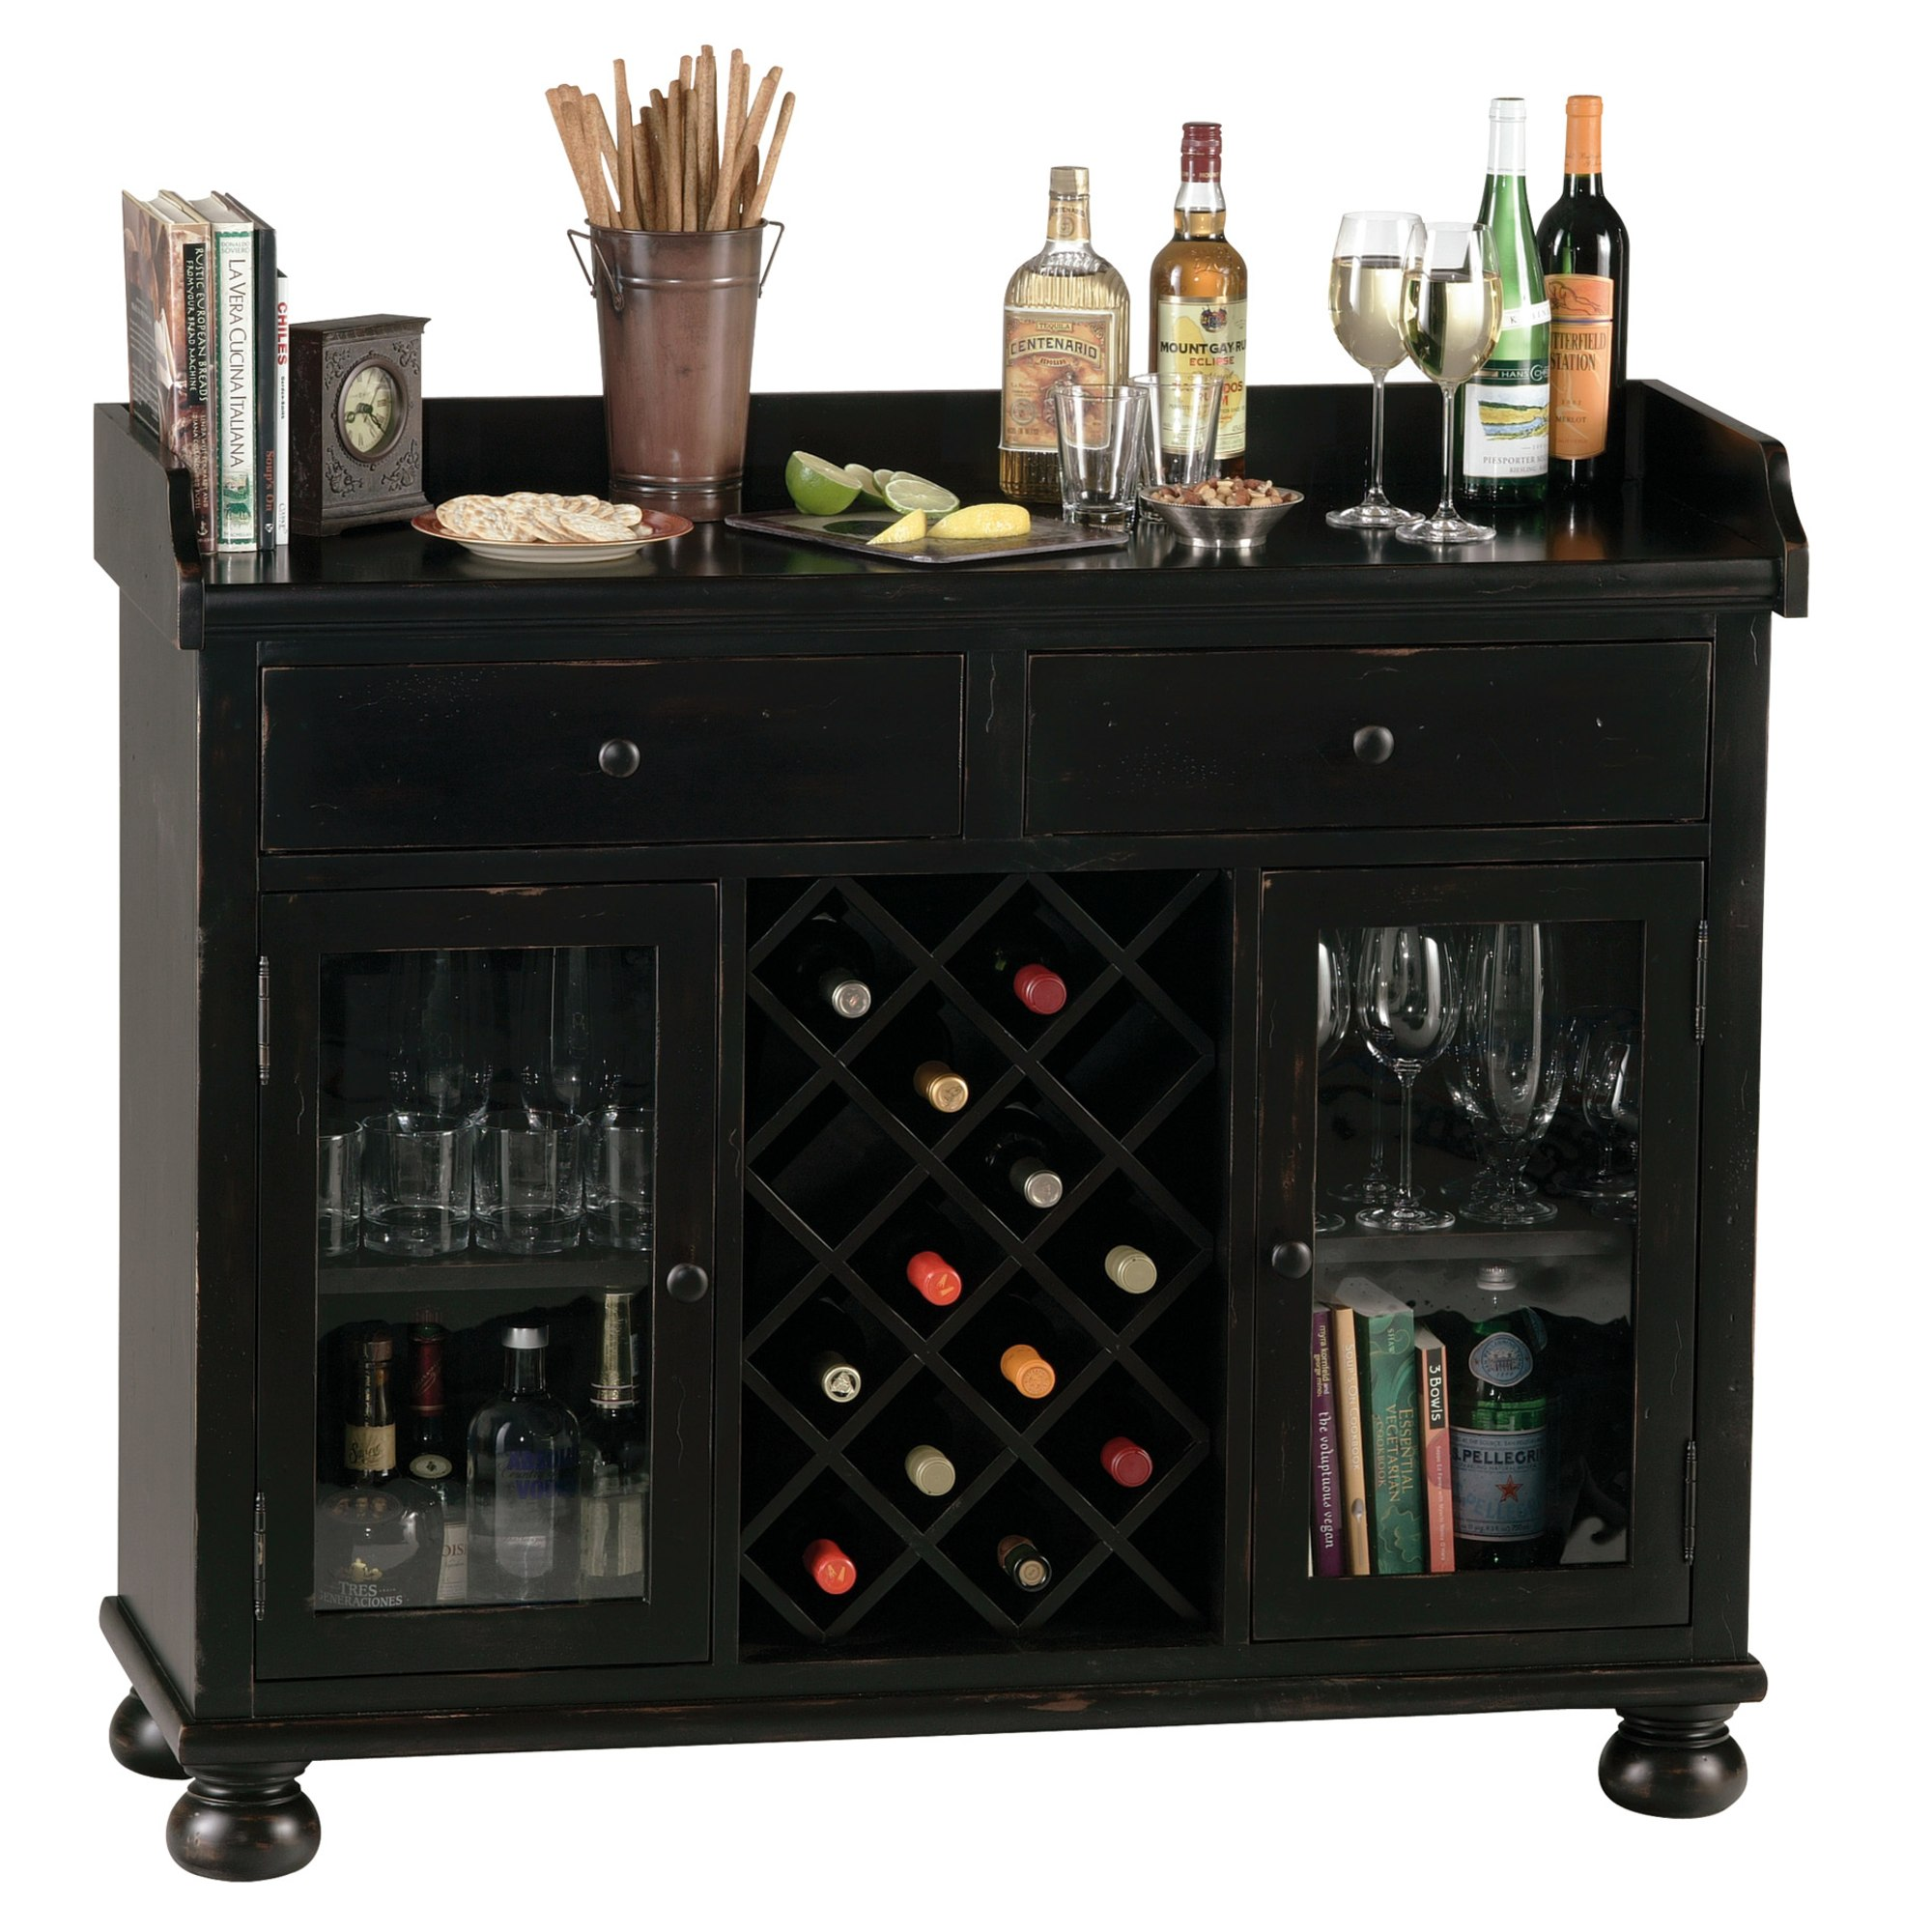 Image for 695-002 Cabernet Hills Wine & Bar Console from Howard Miller Official Website